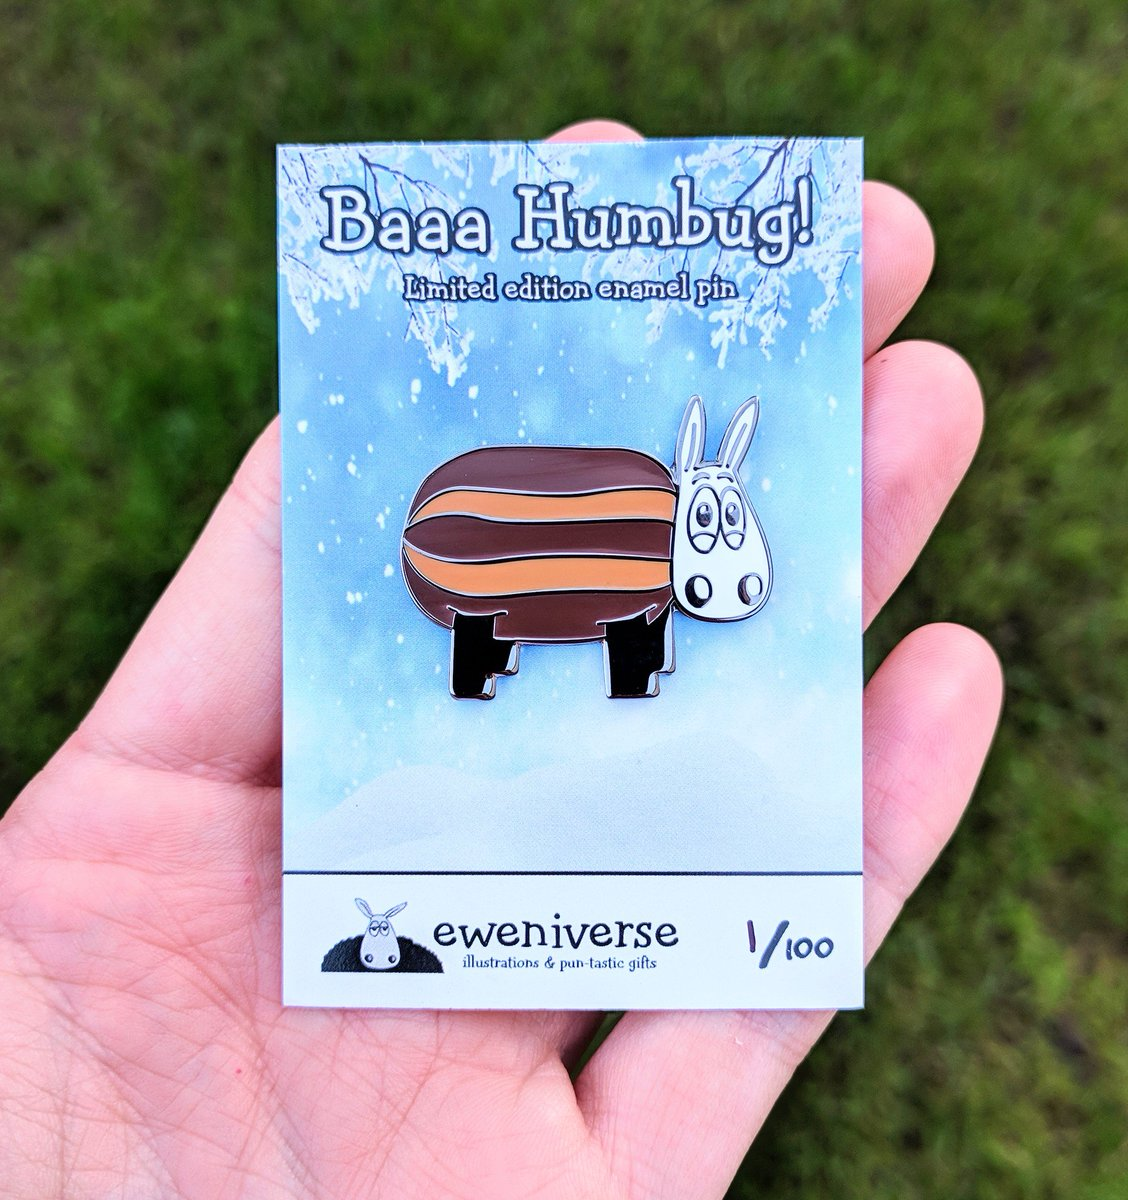 Baaa Humbug! Ltd edition winter enamel pin at  http://www. eweniverse.com  &nbsp;    #HandmadeHour #MidlandsHour #GlosHour #Sheep #bahhumbug #stockingfillers<br>http://pic.twitter.com/38ixT97ime